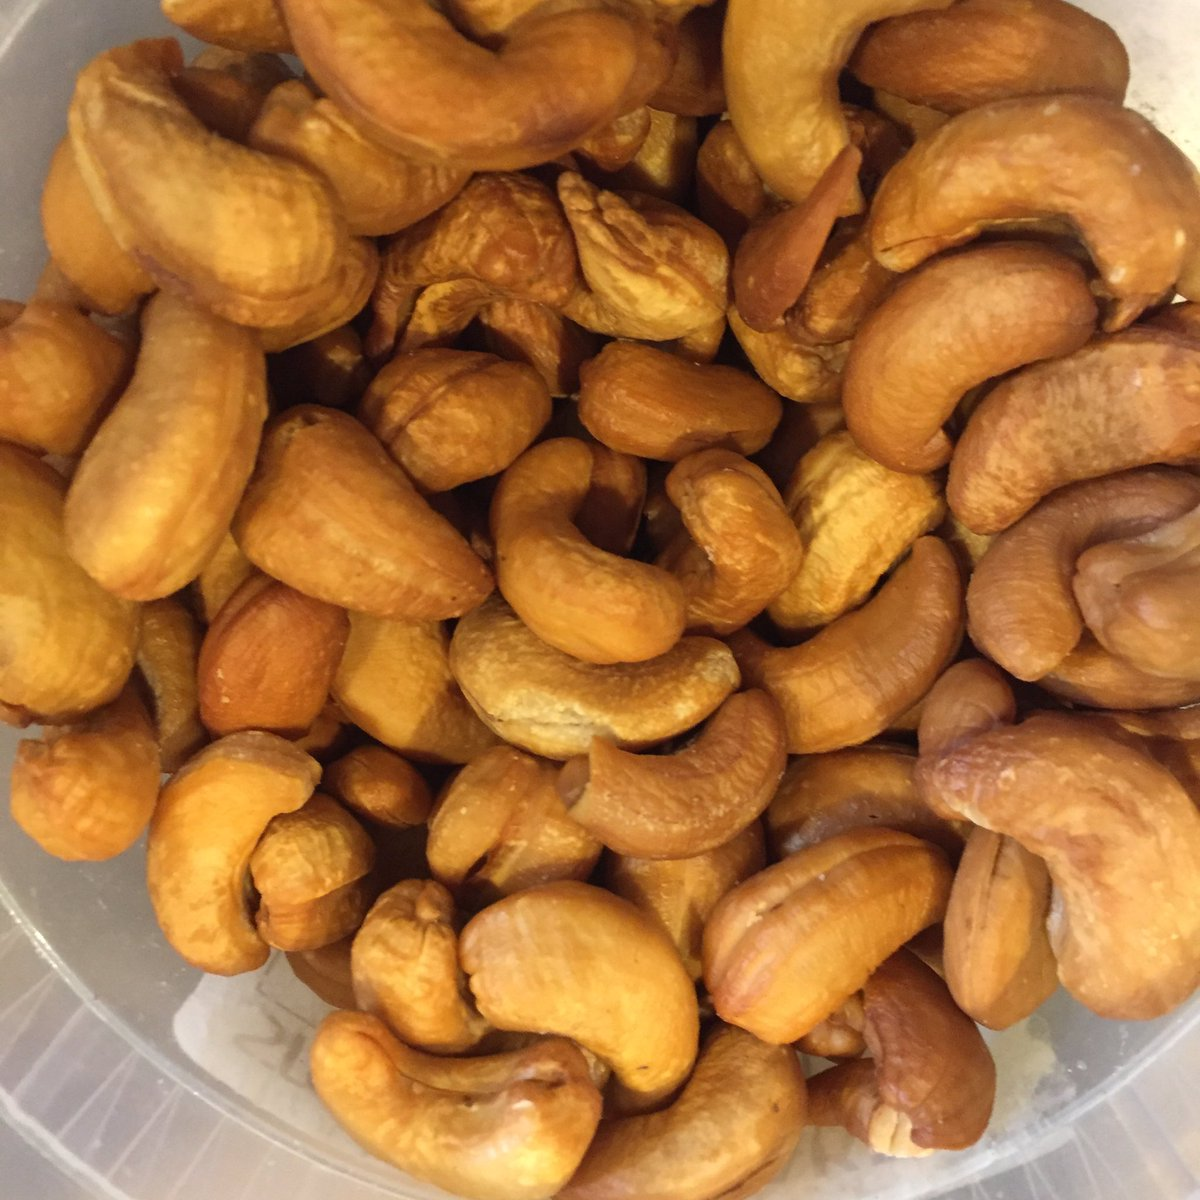 @sunshinenutco your cashews are spectacular and so is your mission #givingback #philanthropy #nuts #sunshinenutco https://t.co/tJi8mdbWmO